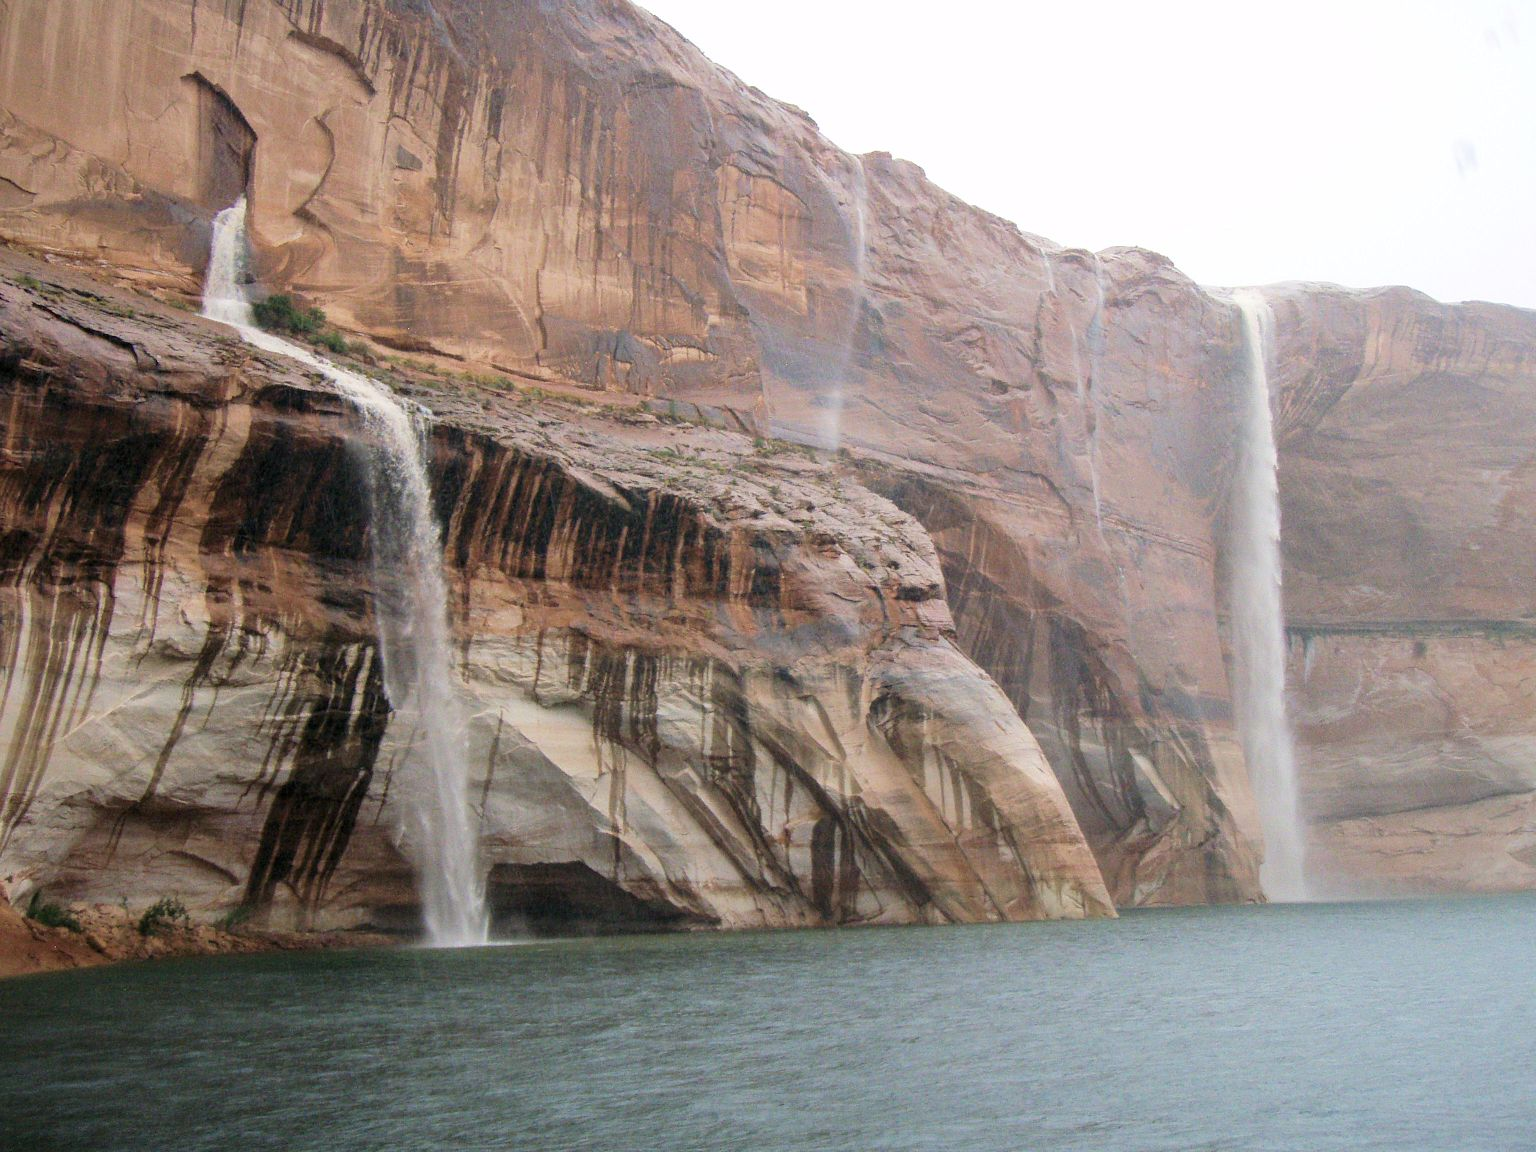 Waterfalls on Lake Powell after a desert rain